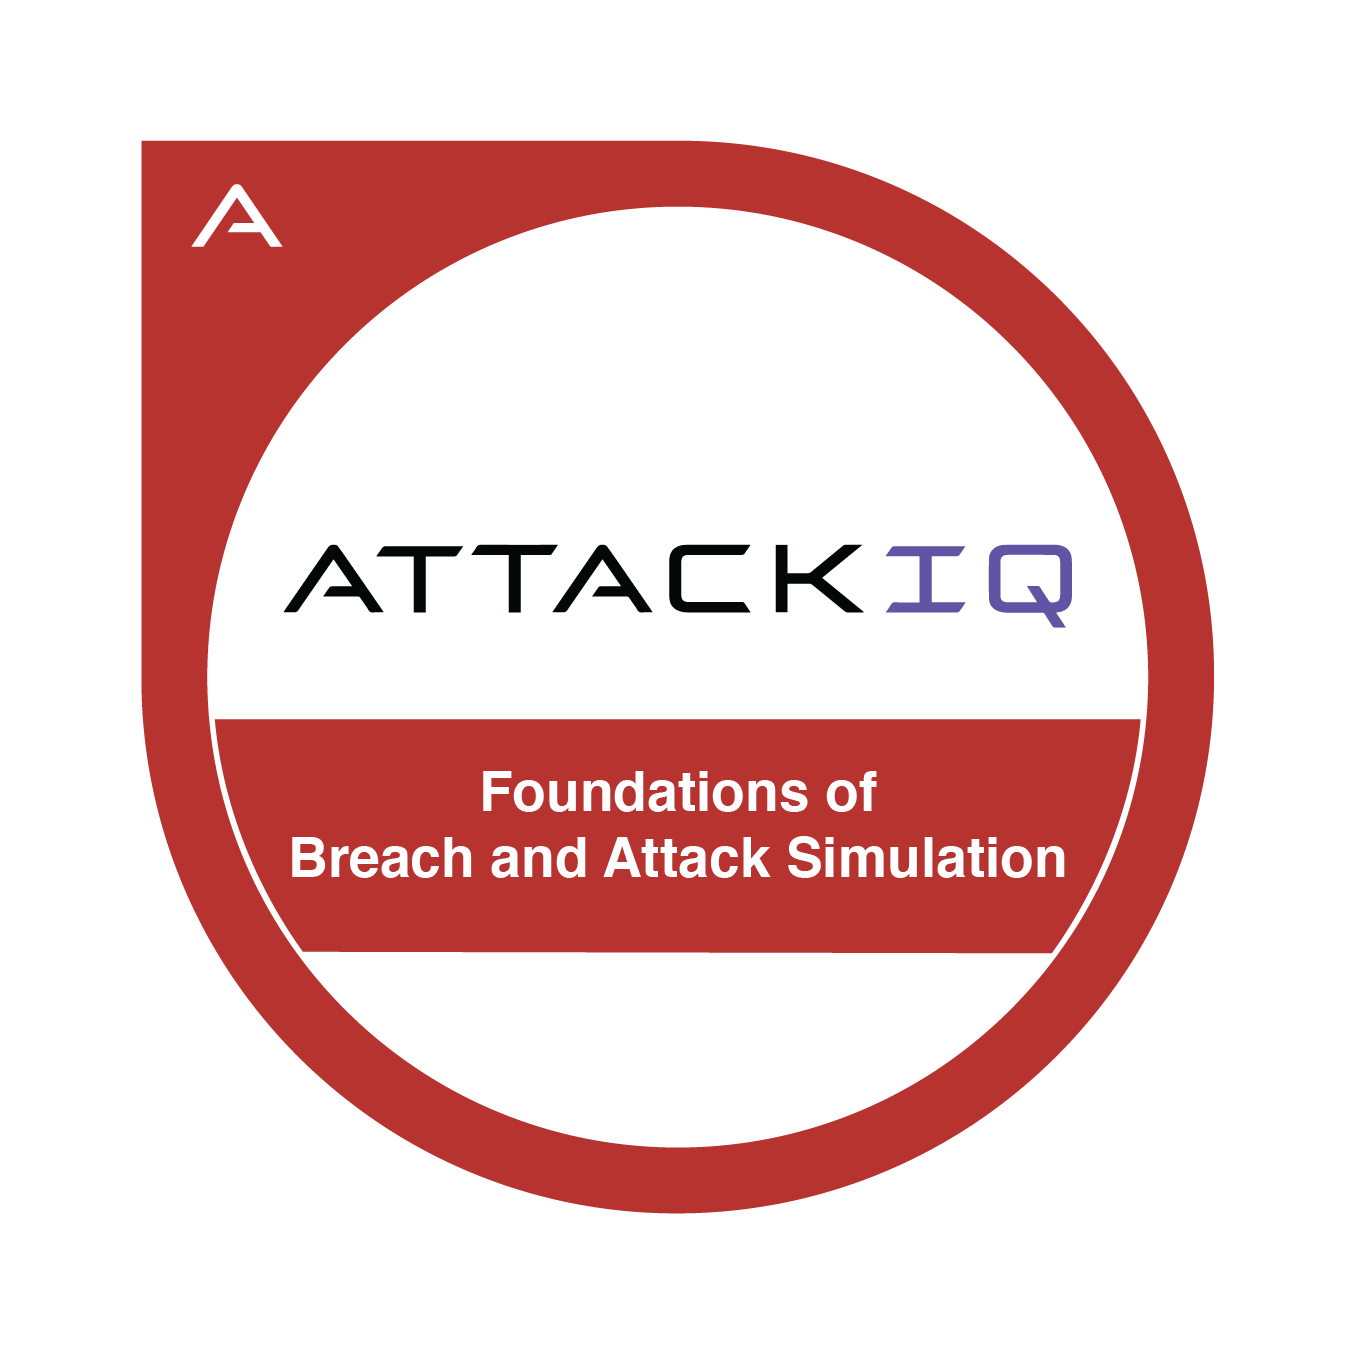 Foundations of Breach & Attack Simulation